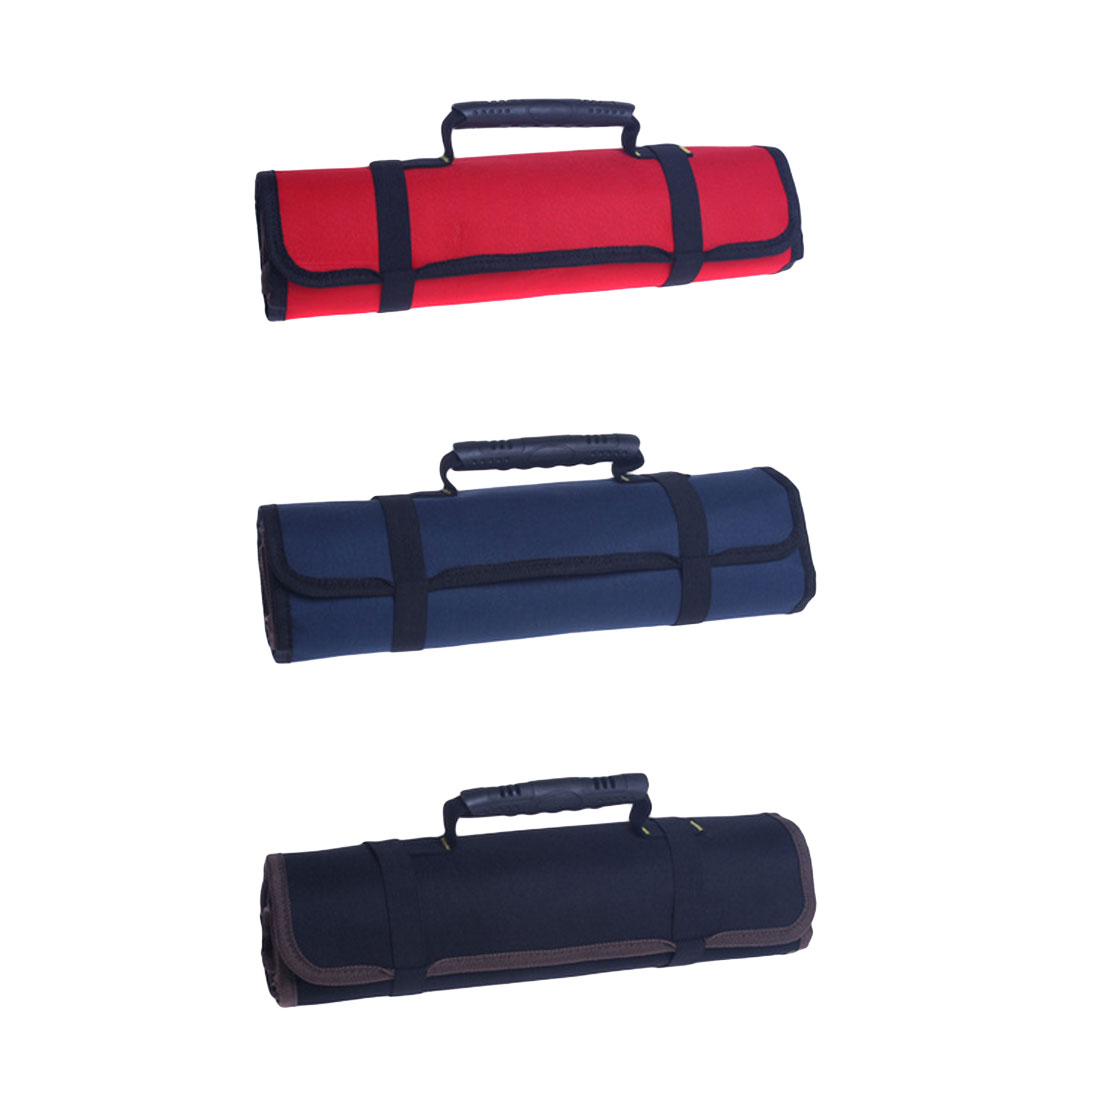 Handles Oxford Canvas Wrench Storage Roll Bag Tool Multifunction Tool Bag Practical Carrying Instrument Case 585mm X 355mm